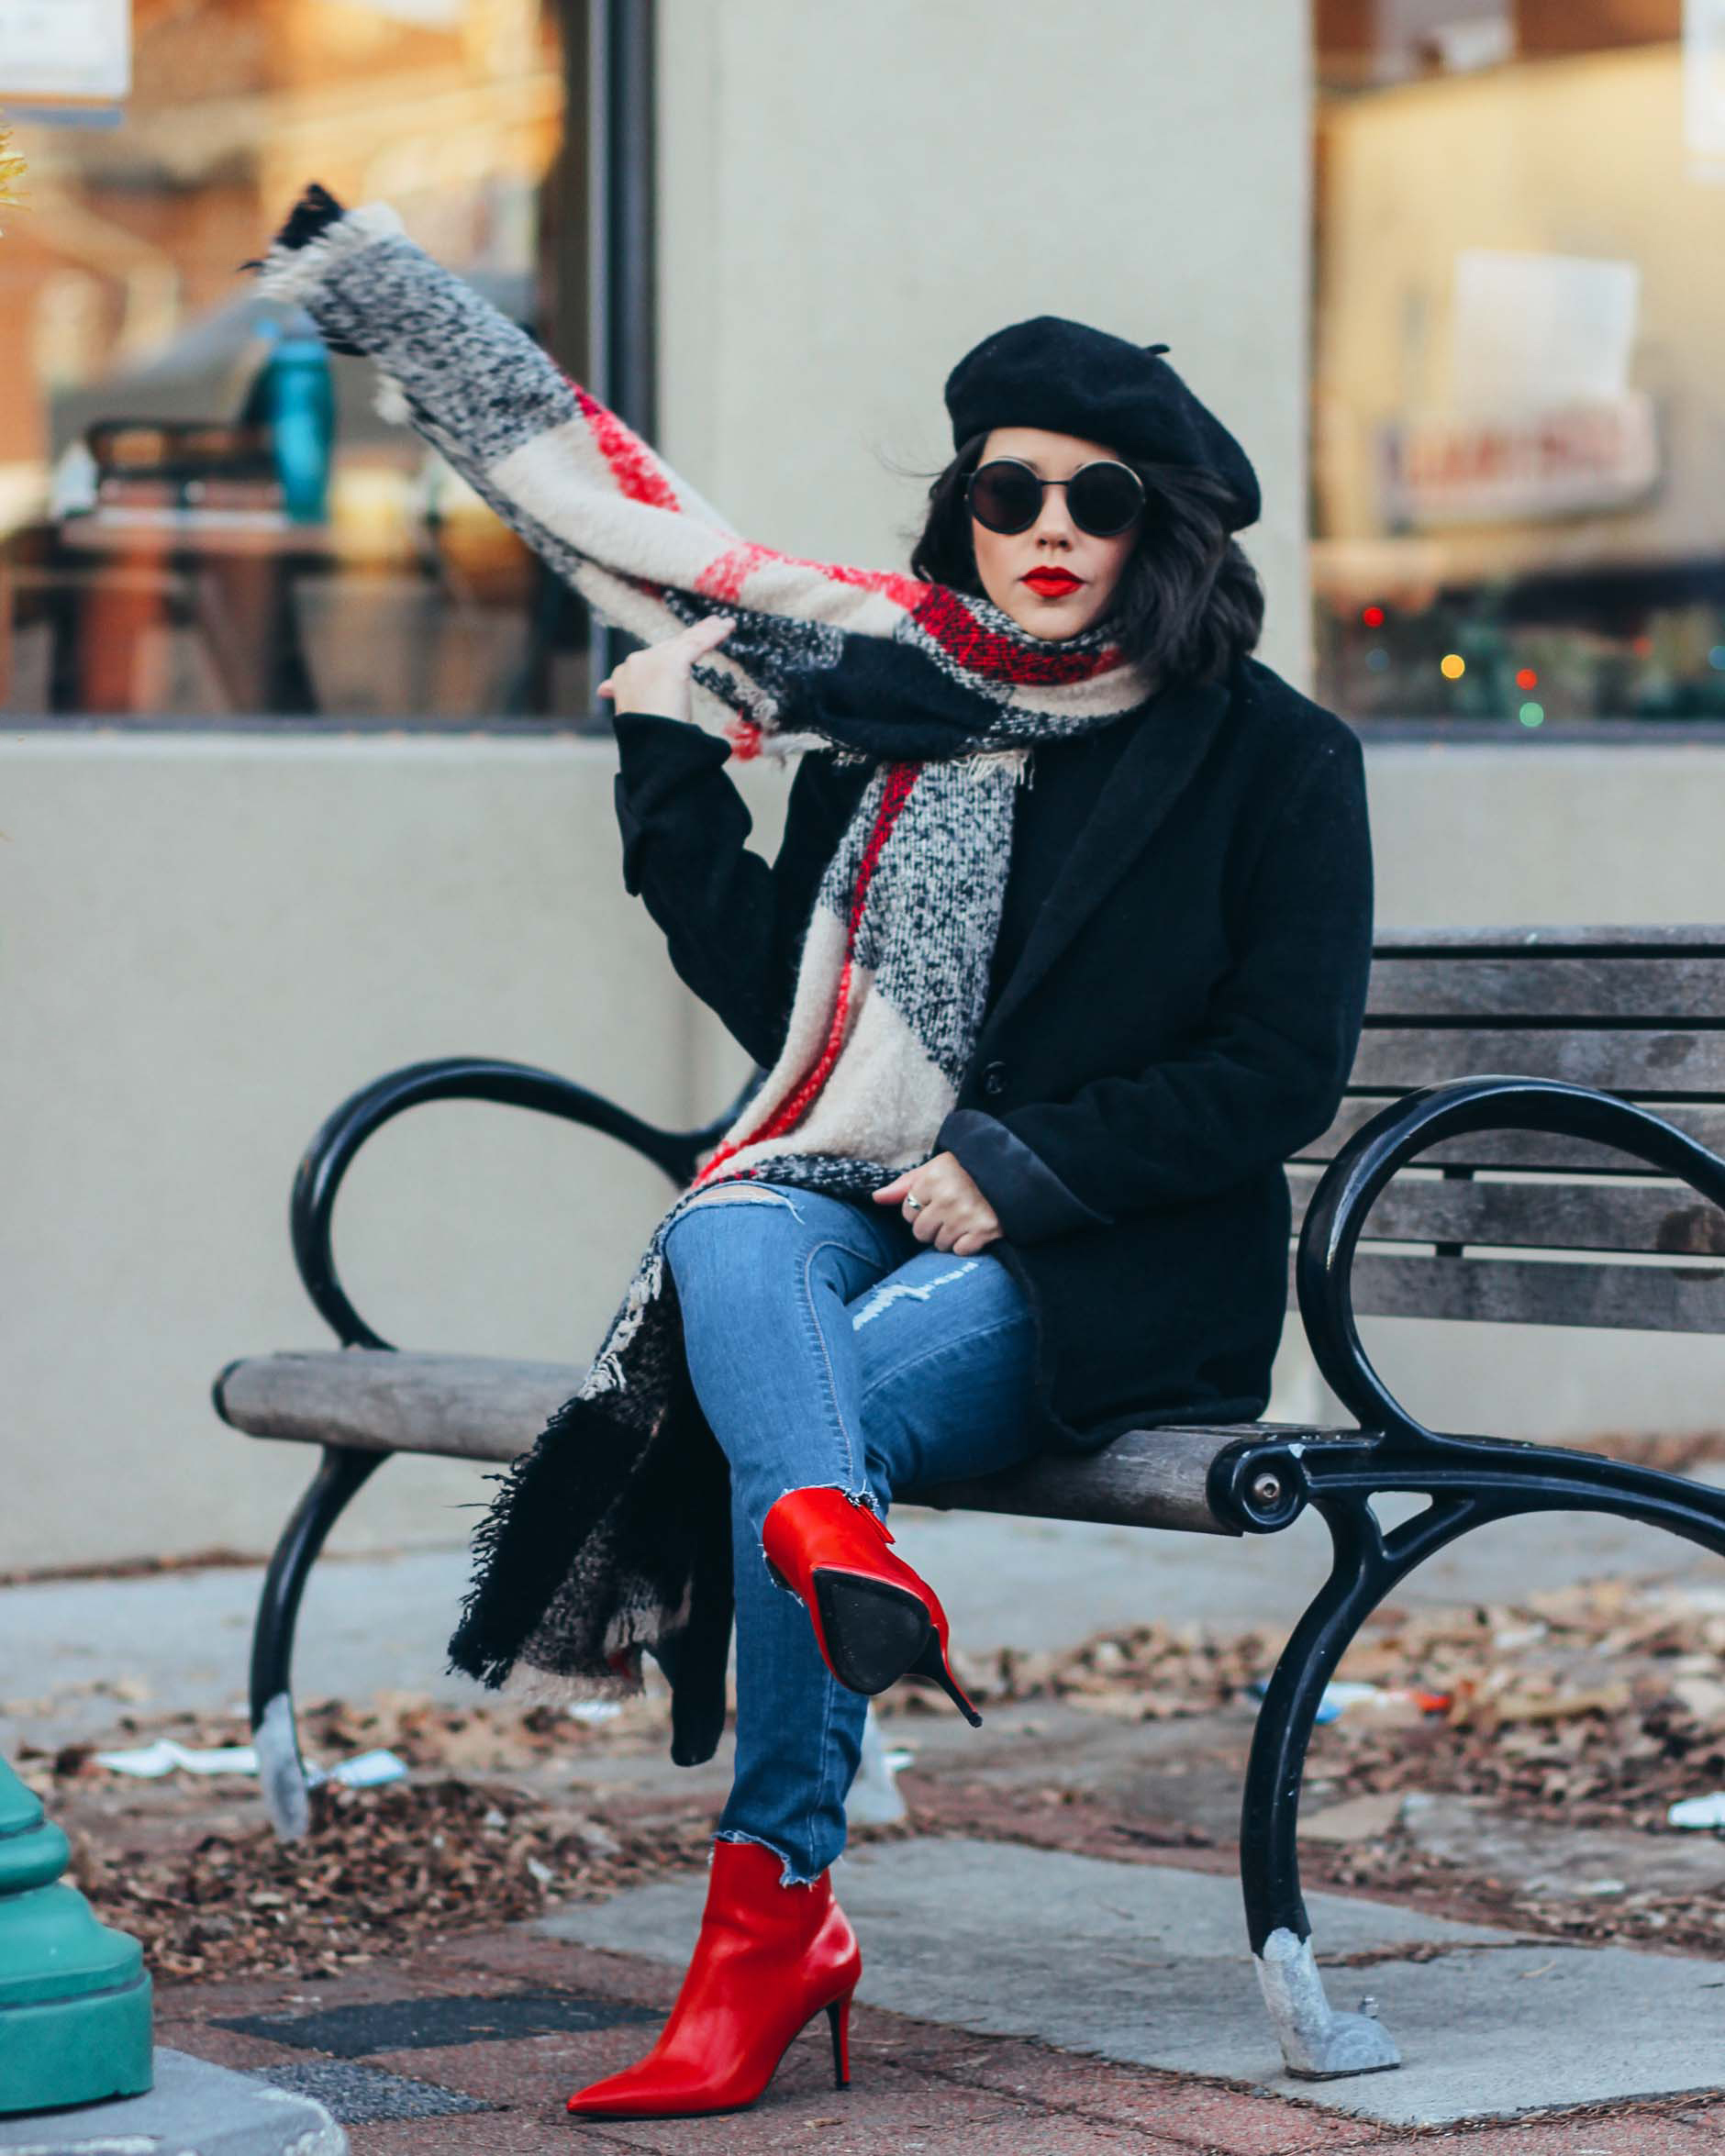 naty michele wearing a beret, red boots and plaid scarf